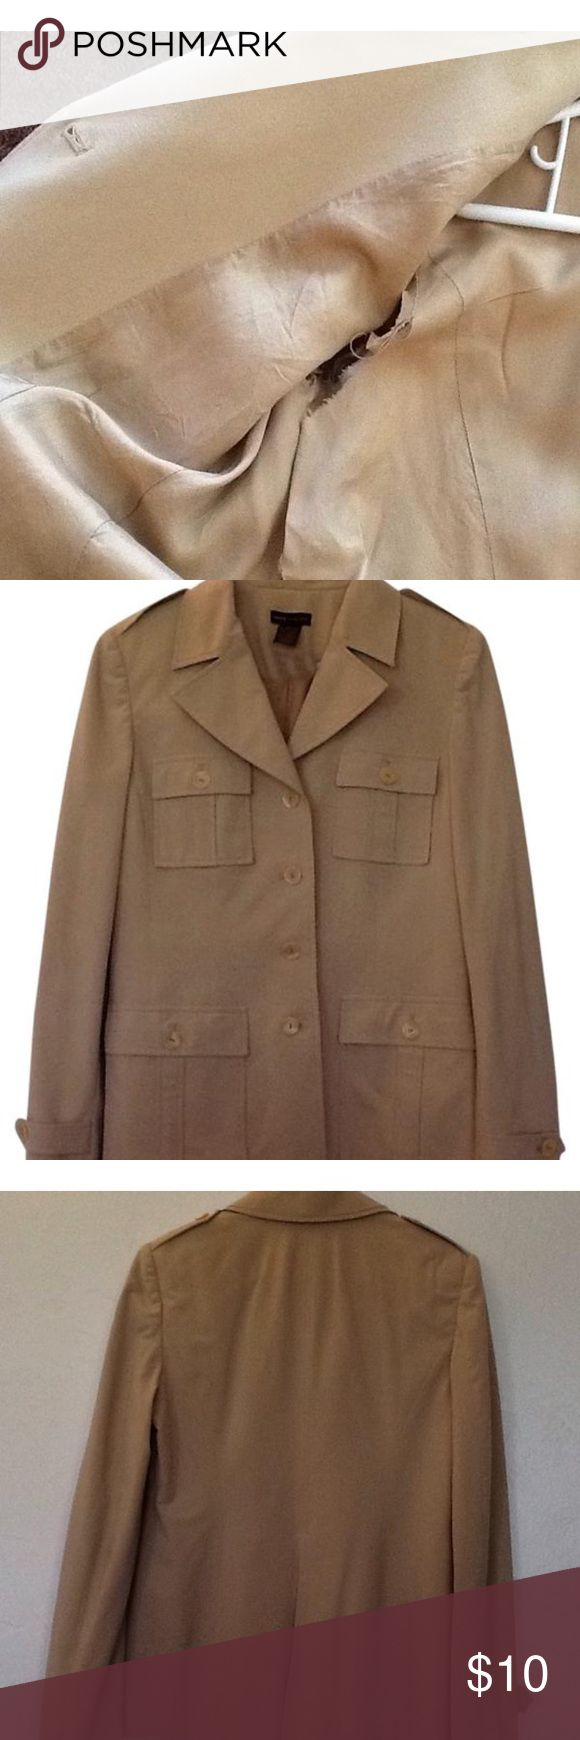 Woman's suit jacket Camel color jacket great for work with dress pants or with skinny jeans for a night out! Slight tear in inside lining. (See photo) no damage on outside layer. grace dane lewis Jackets & Coats Blazers